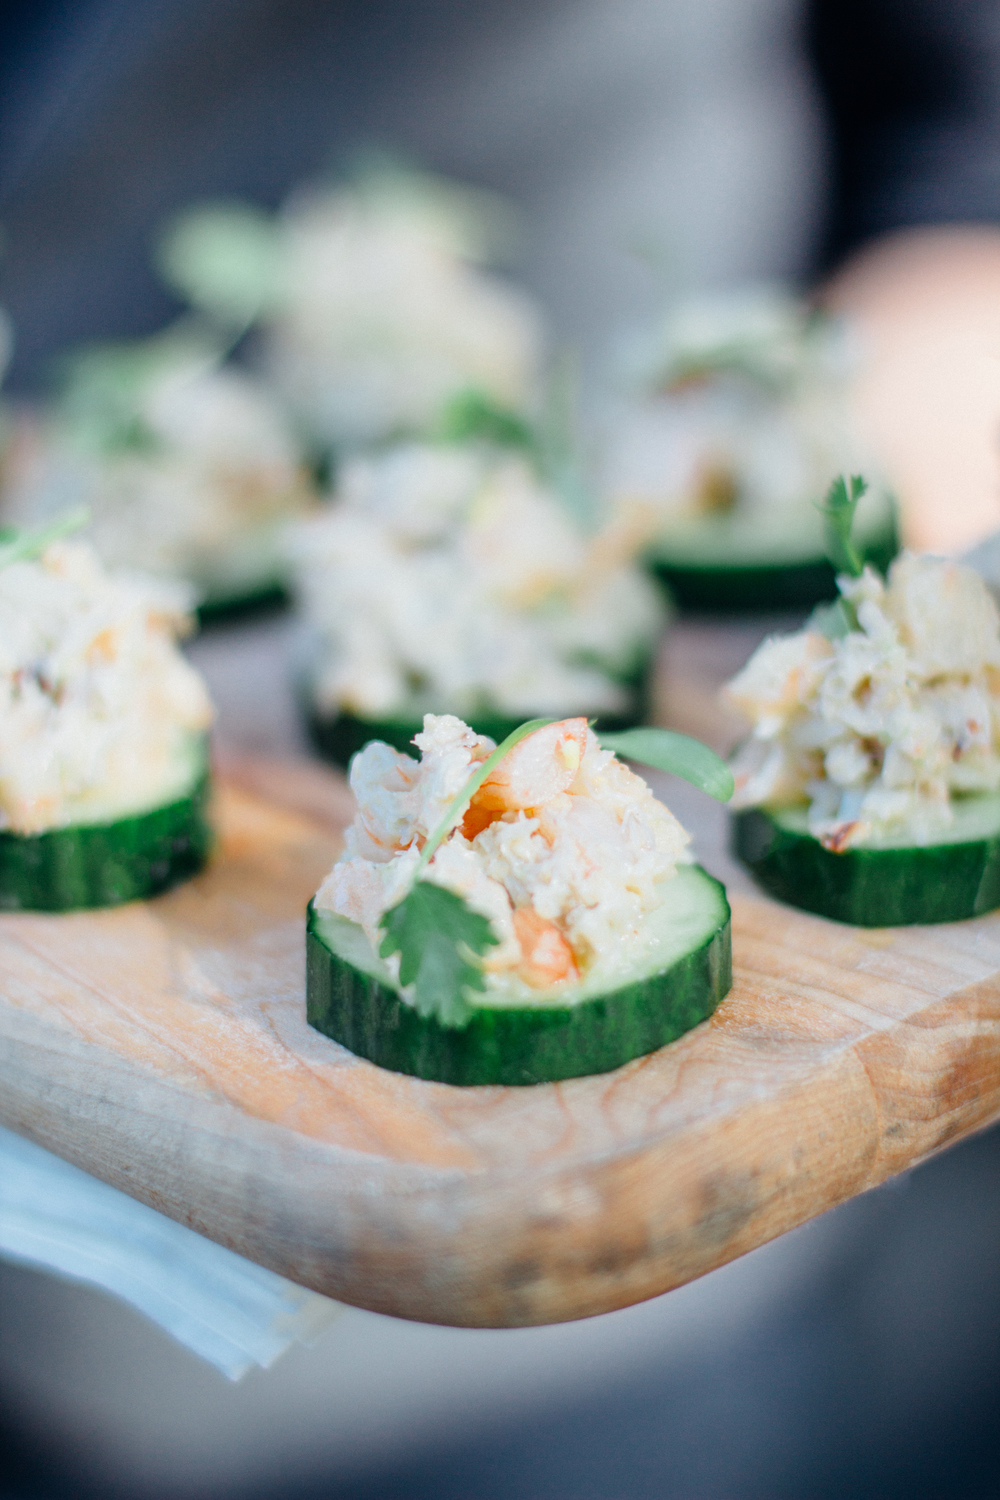 Crab and Shrimp with Jalapeno Pesto on Cucumber Medallion